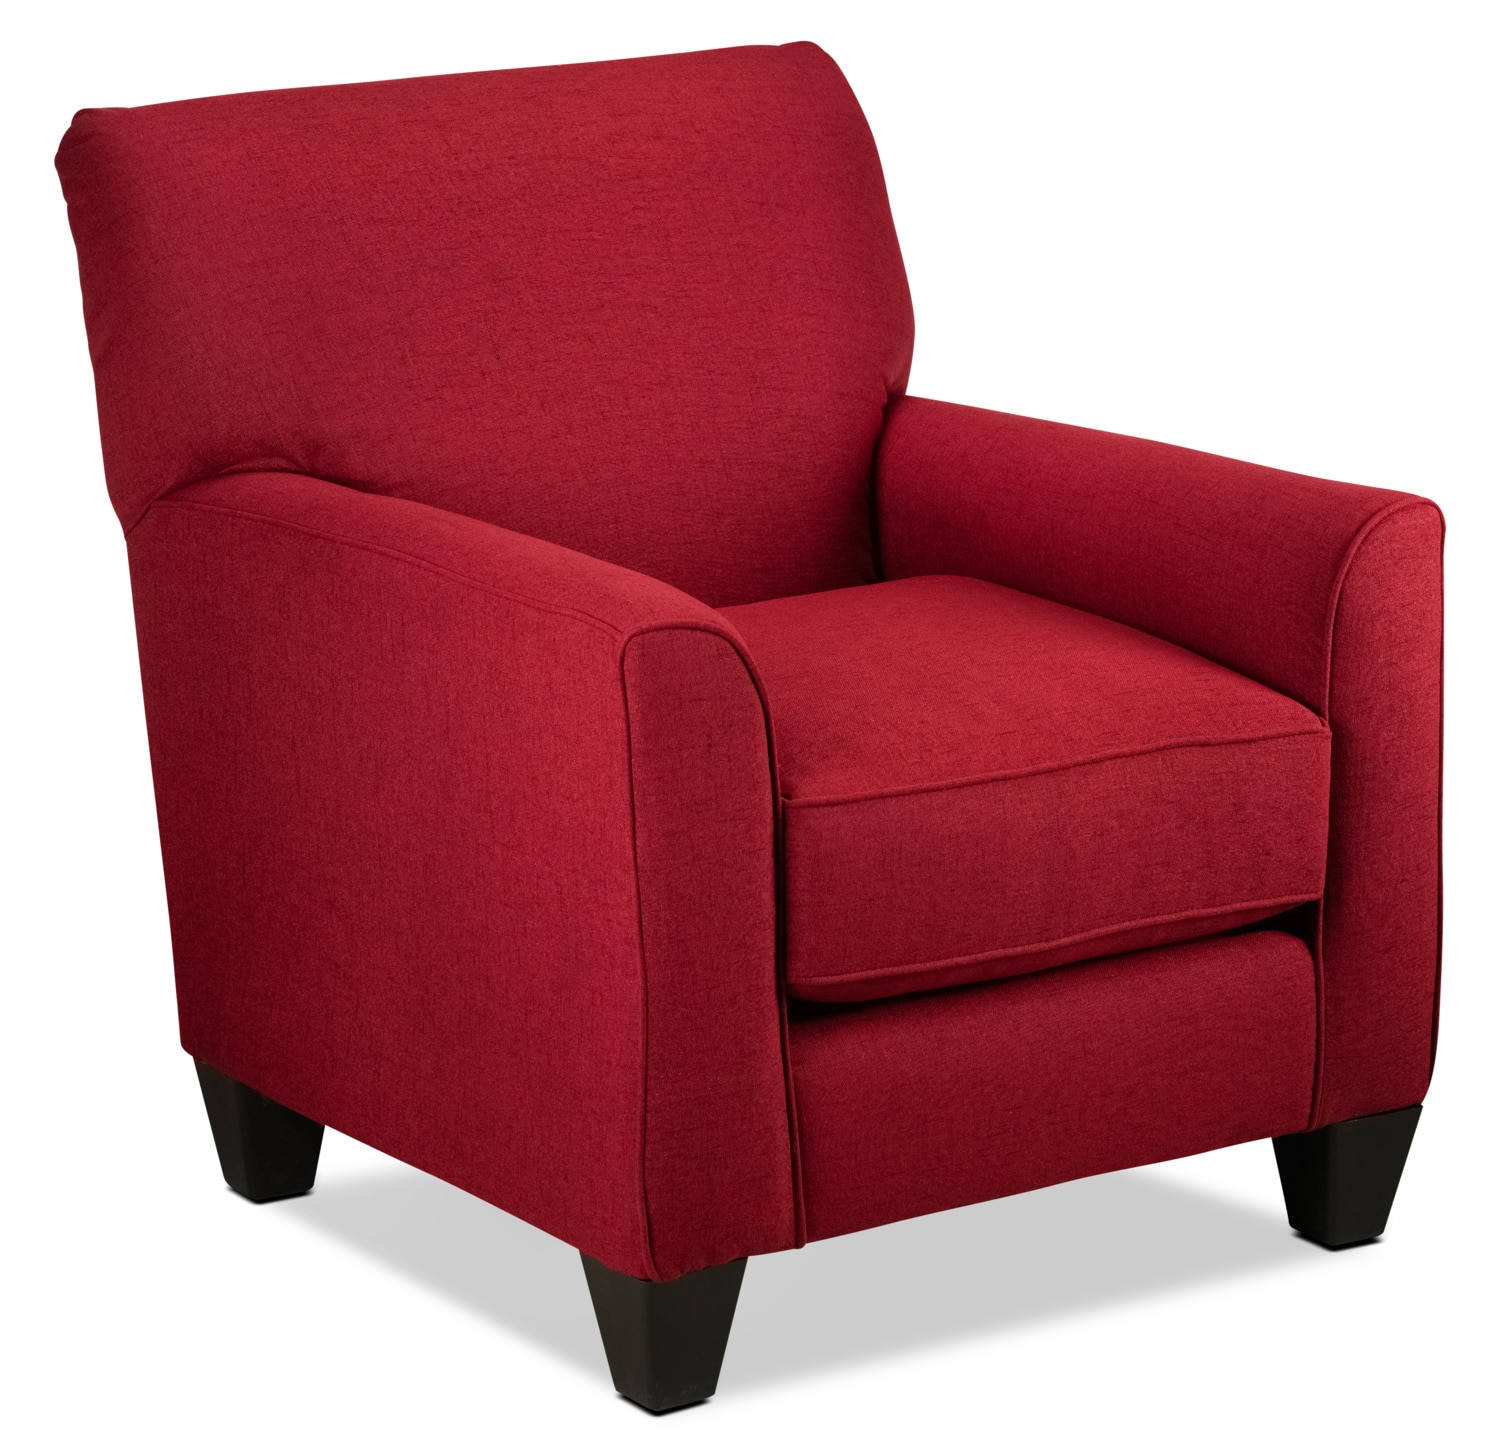 Halifax Accent Chair - Red